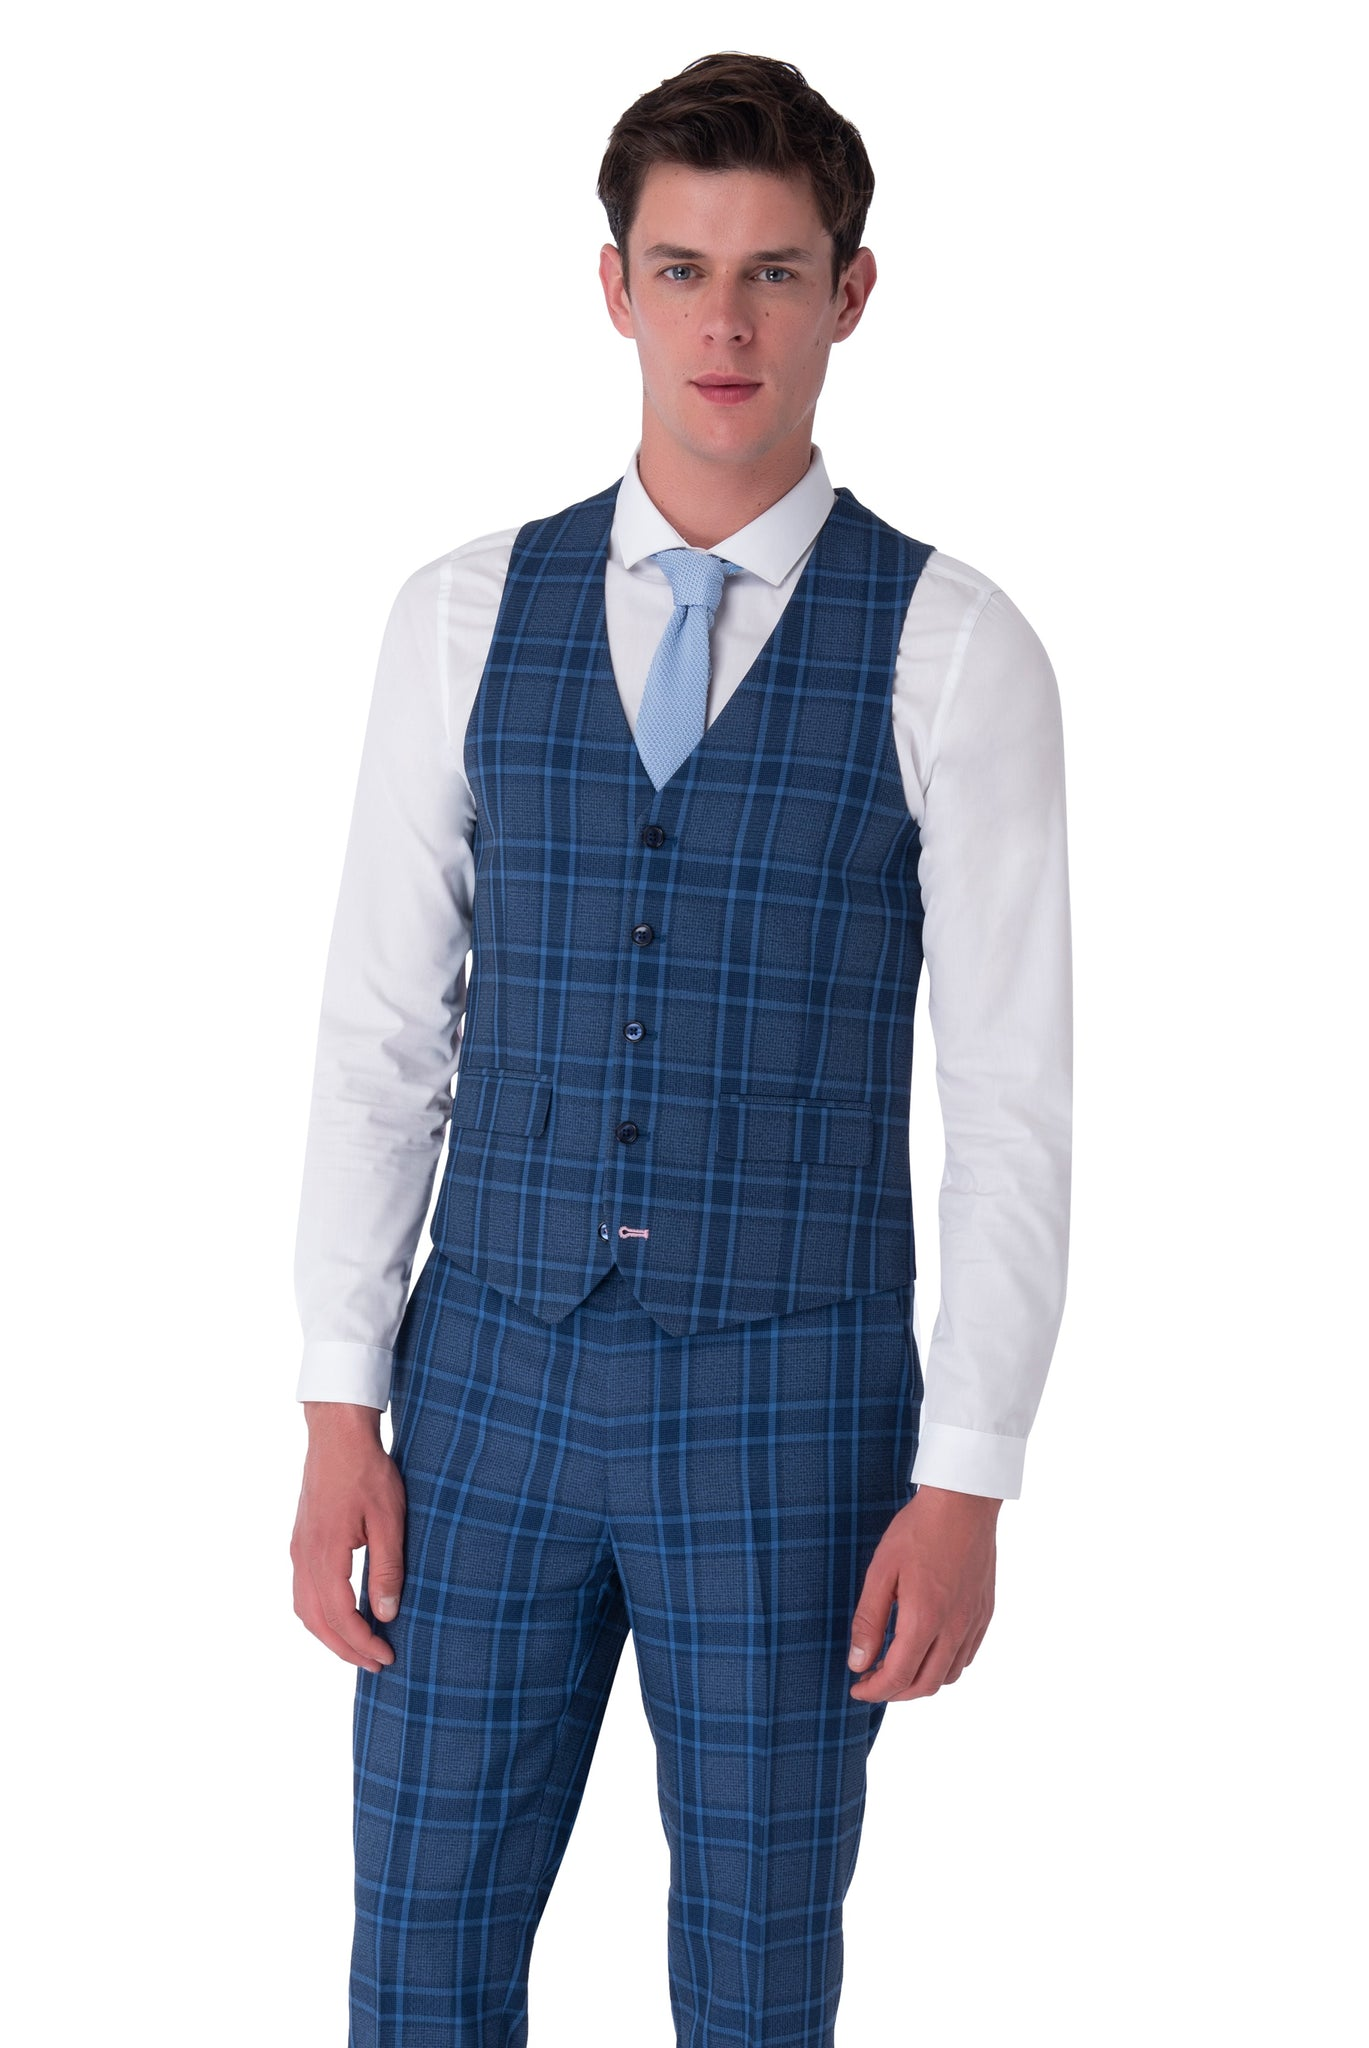 Waistcoat of HENRY Blue Check Three Piece Slim Fit Suit